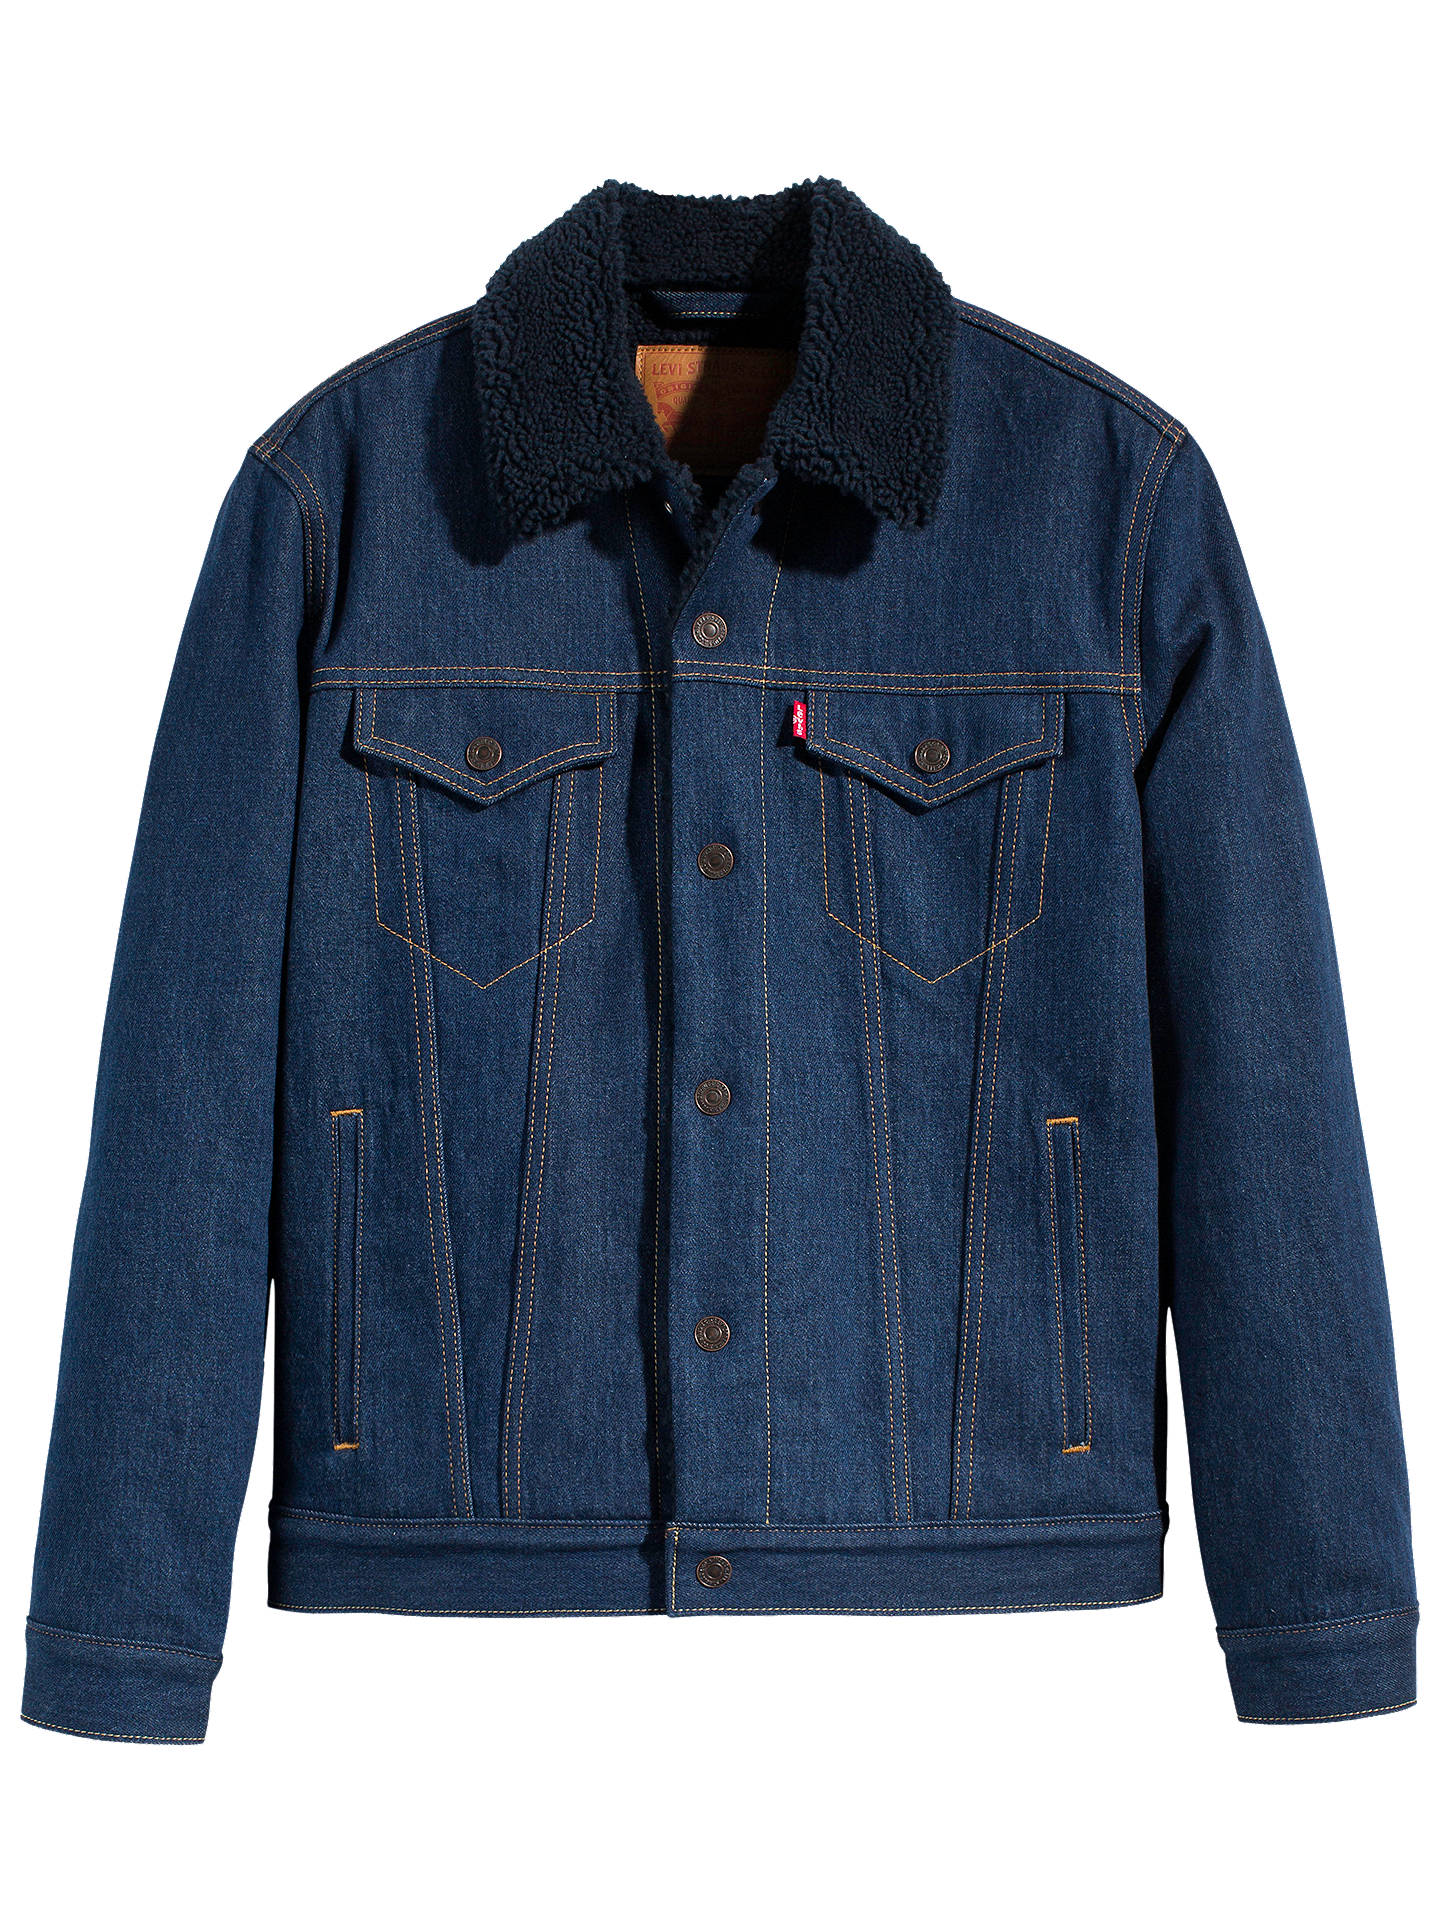 09d778b0bcc Buy Levi's Type 3 Sherpa Trucker Jacket, Indigo Sheep, S Online at  johnlewis.